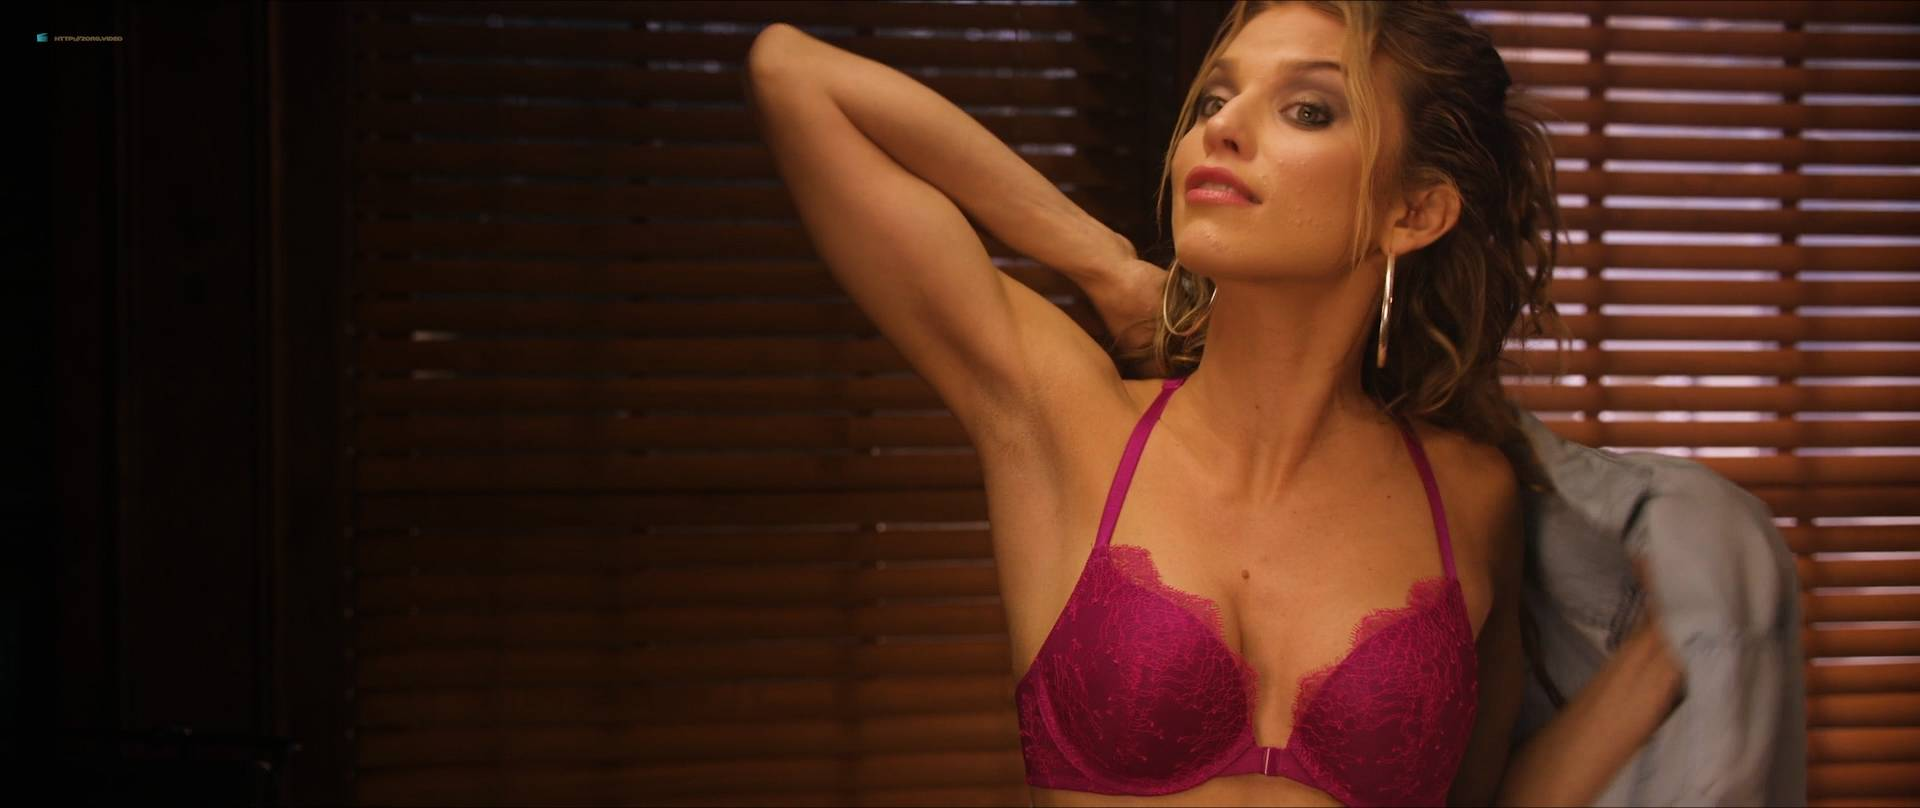 AnnaLynne McCord hot sex Sheila Vand nude topless Alisha Bo cute - 68 Kill (2017) HD1080p BluRay (9)